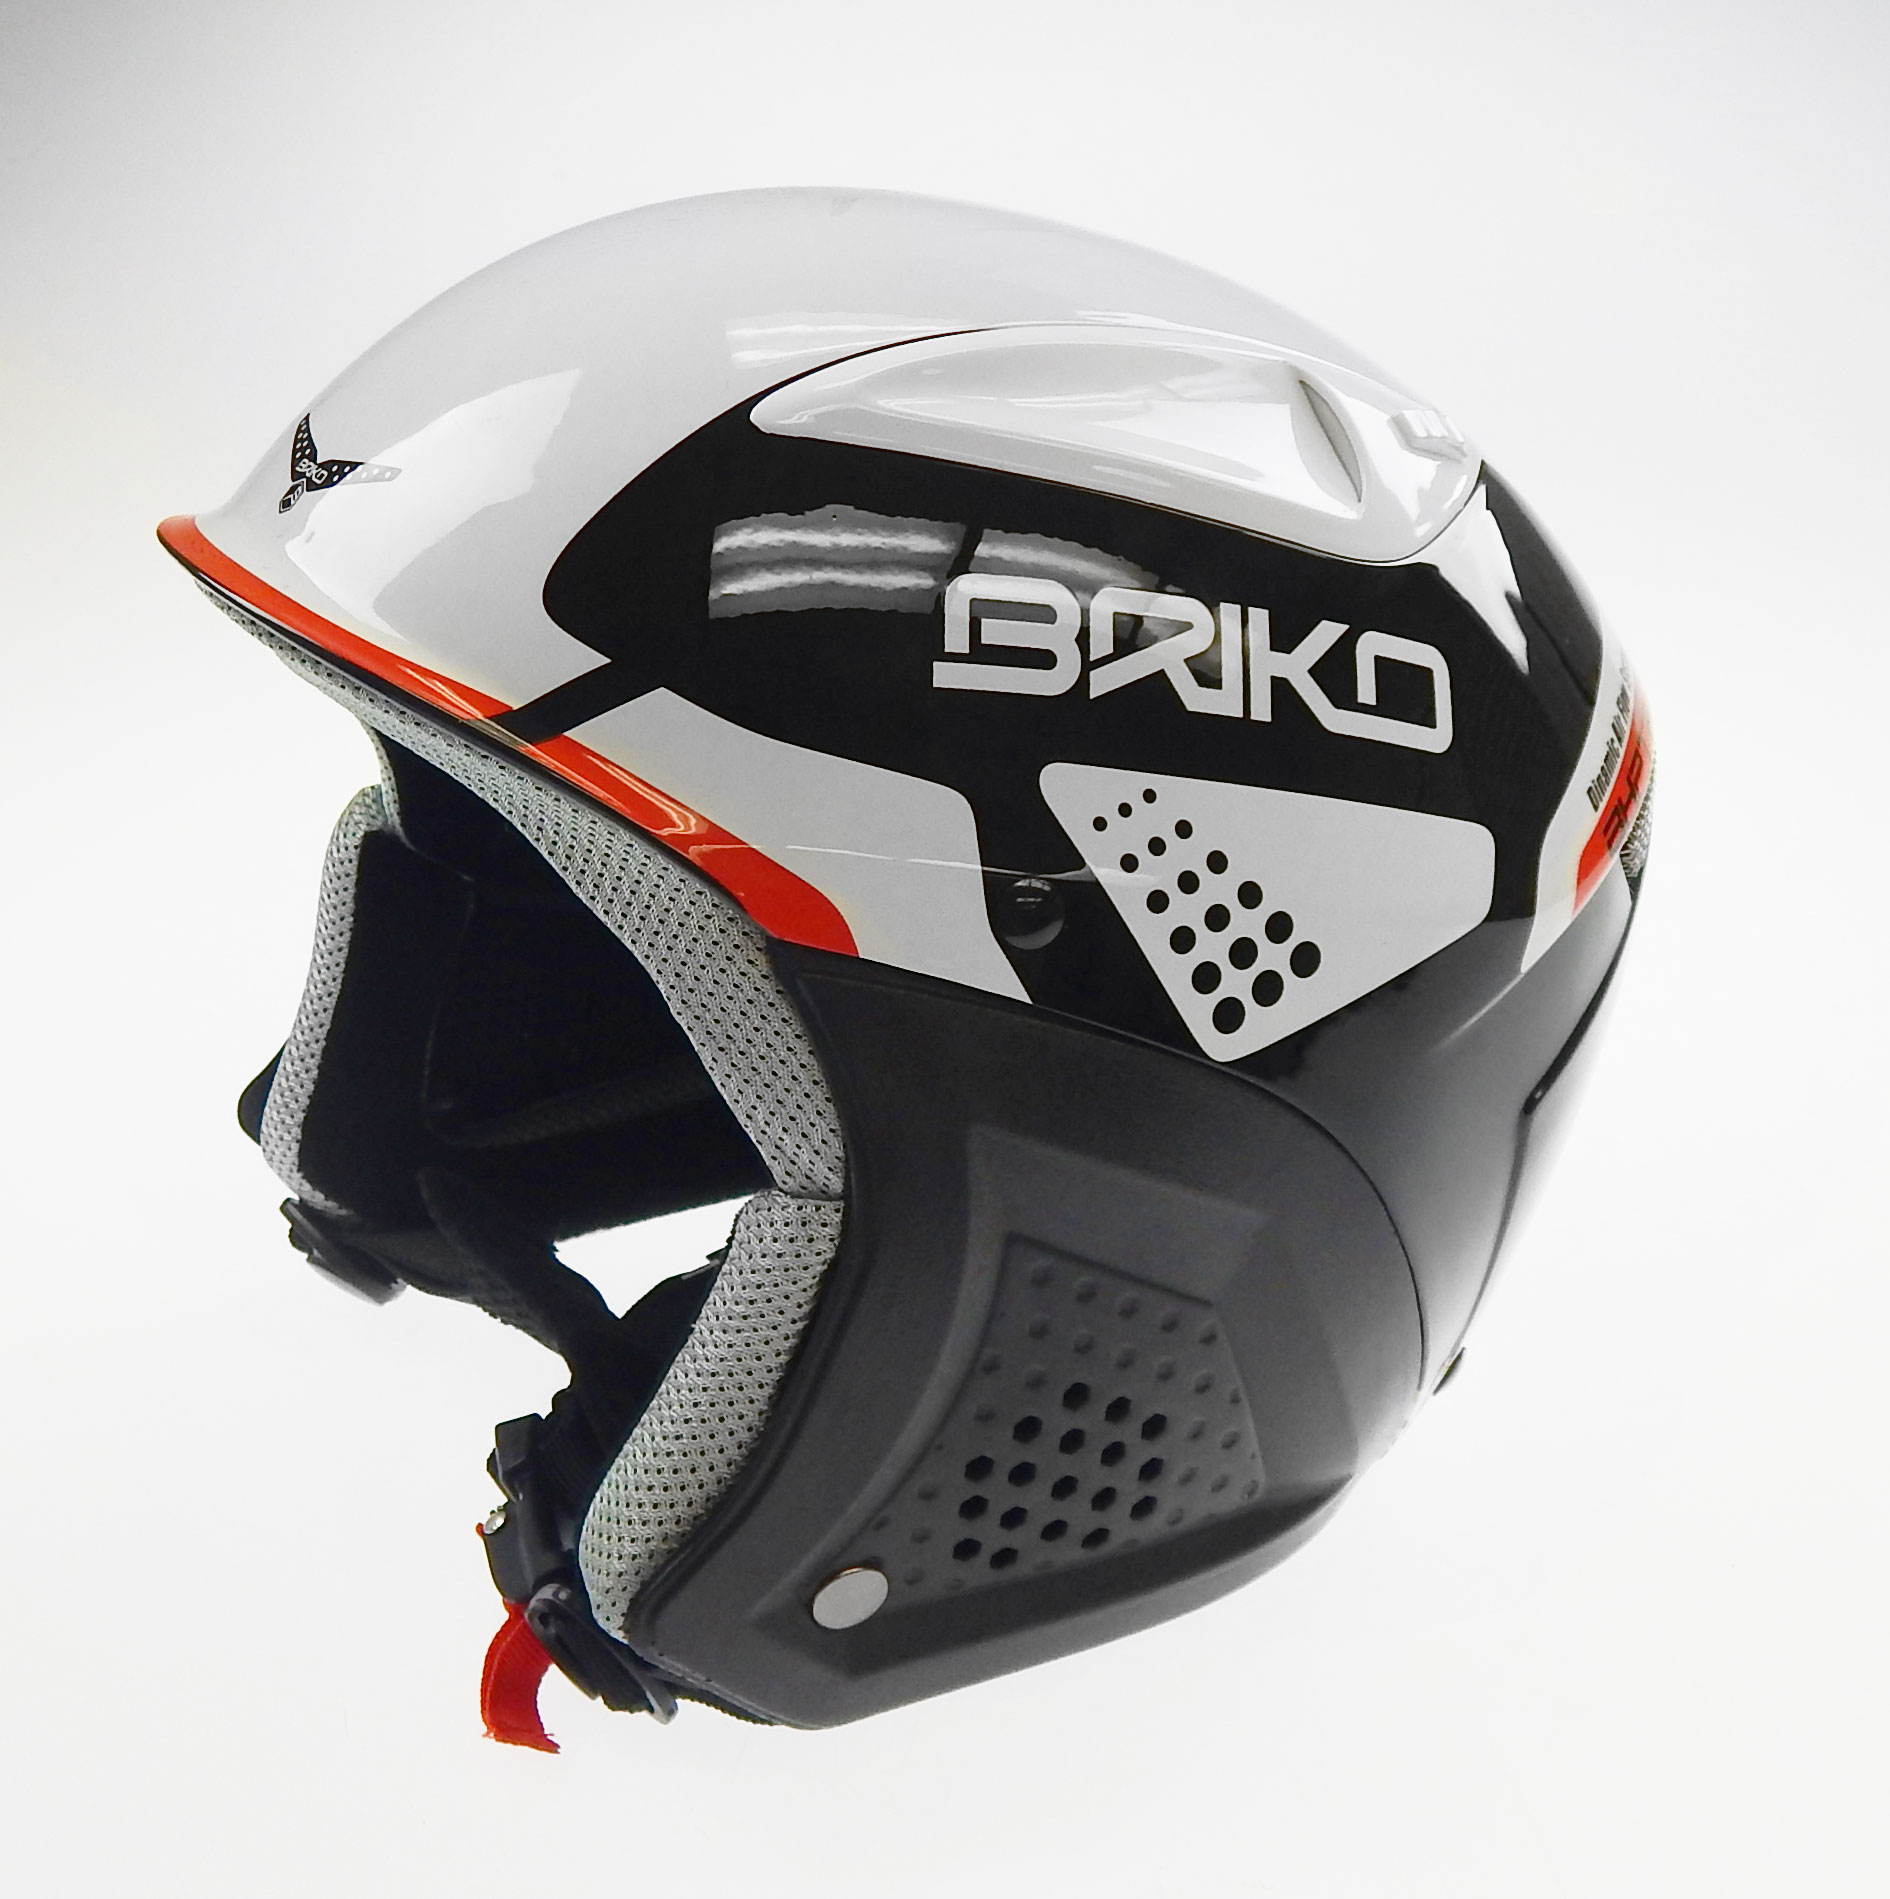 Briko Freemont Ski Helmet Black White Size 52CM by SOGEN SPORTS INC.